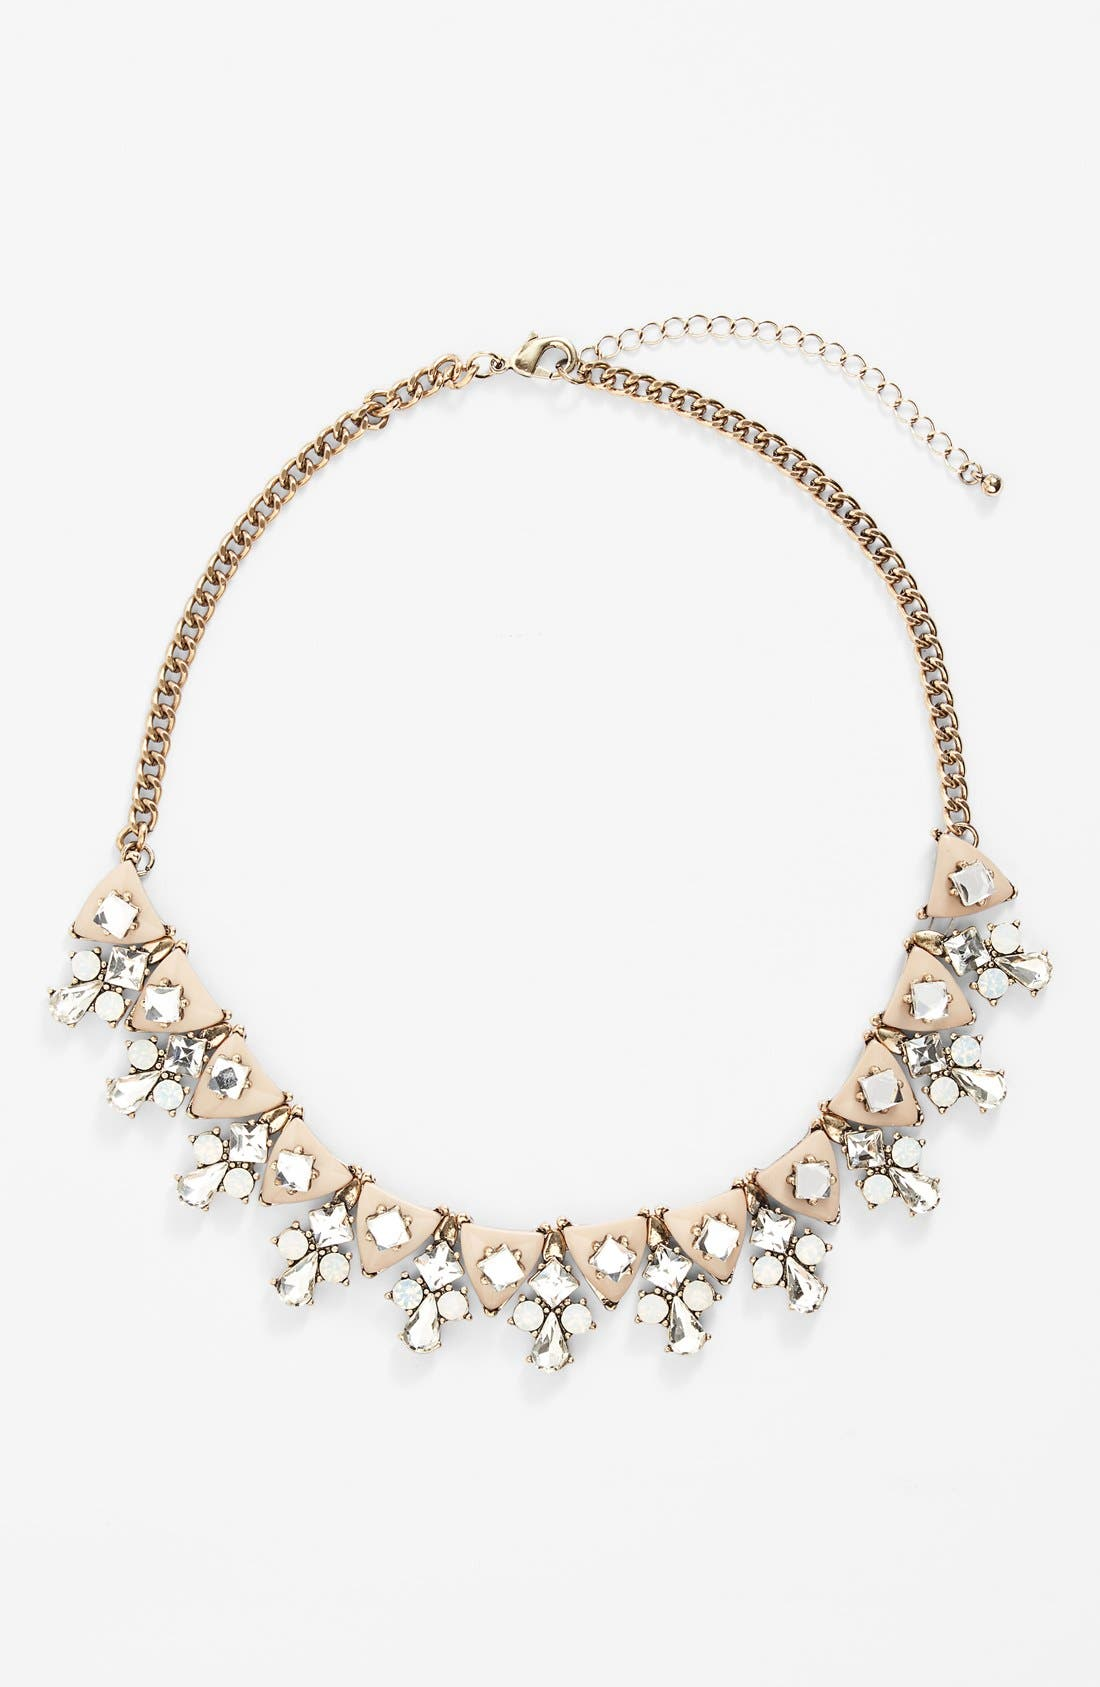 SOLE SOCIETY 'Dainty' Statement Necklace, Main, color, 650